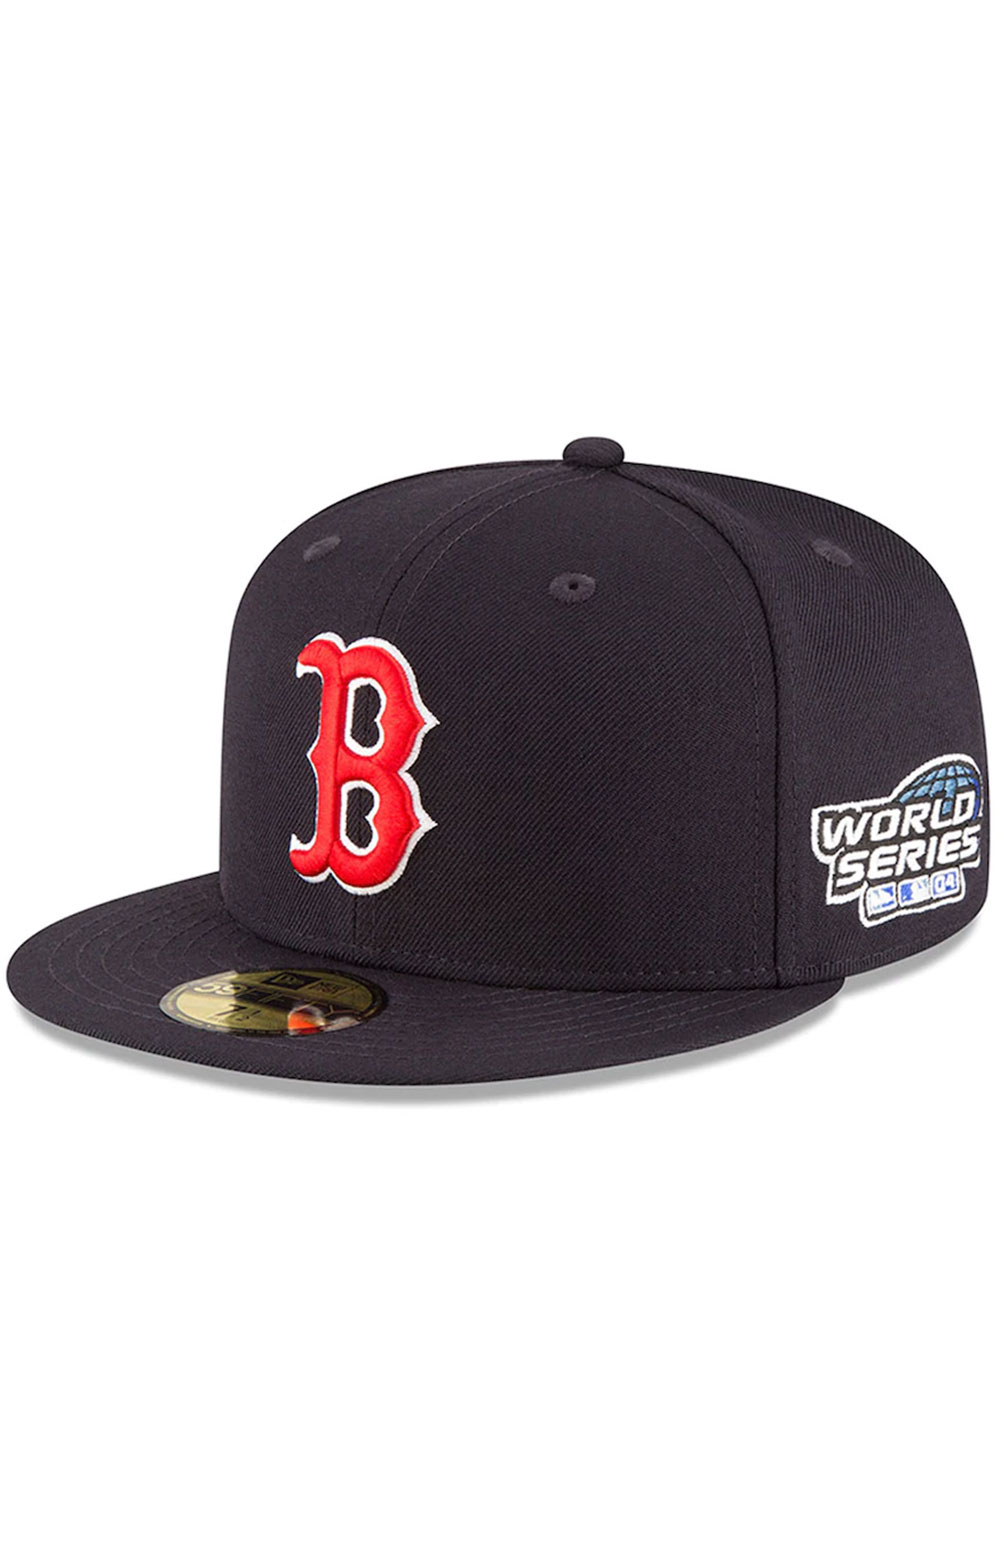 Boston Red Sox 2004 World Series Wool 59Fifty Fitted Hat